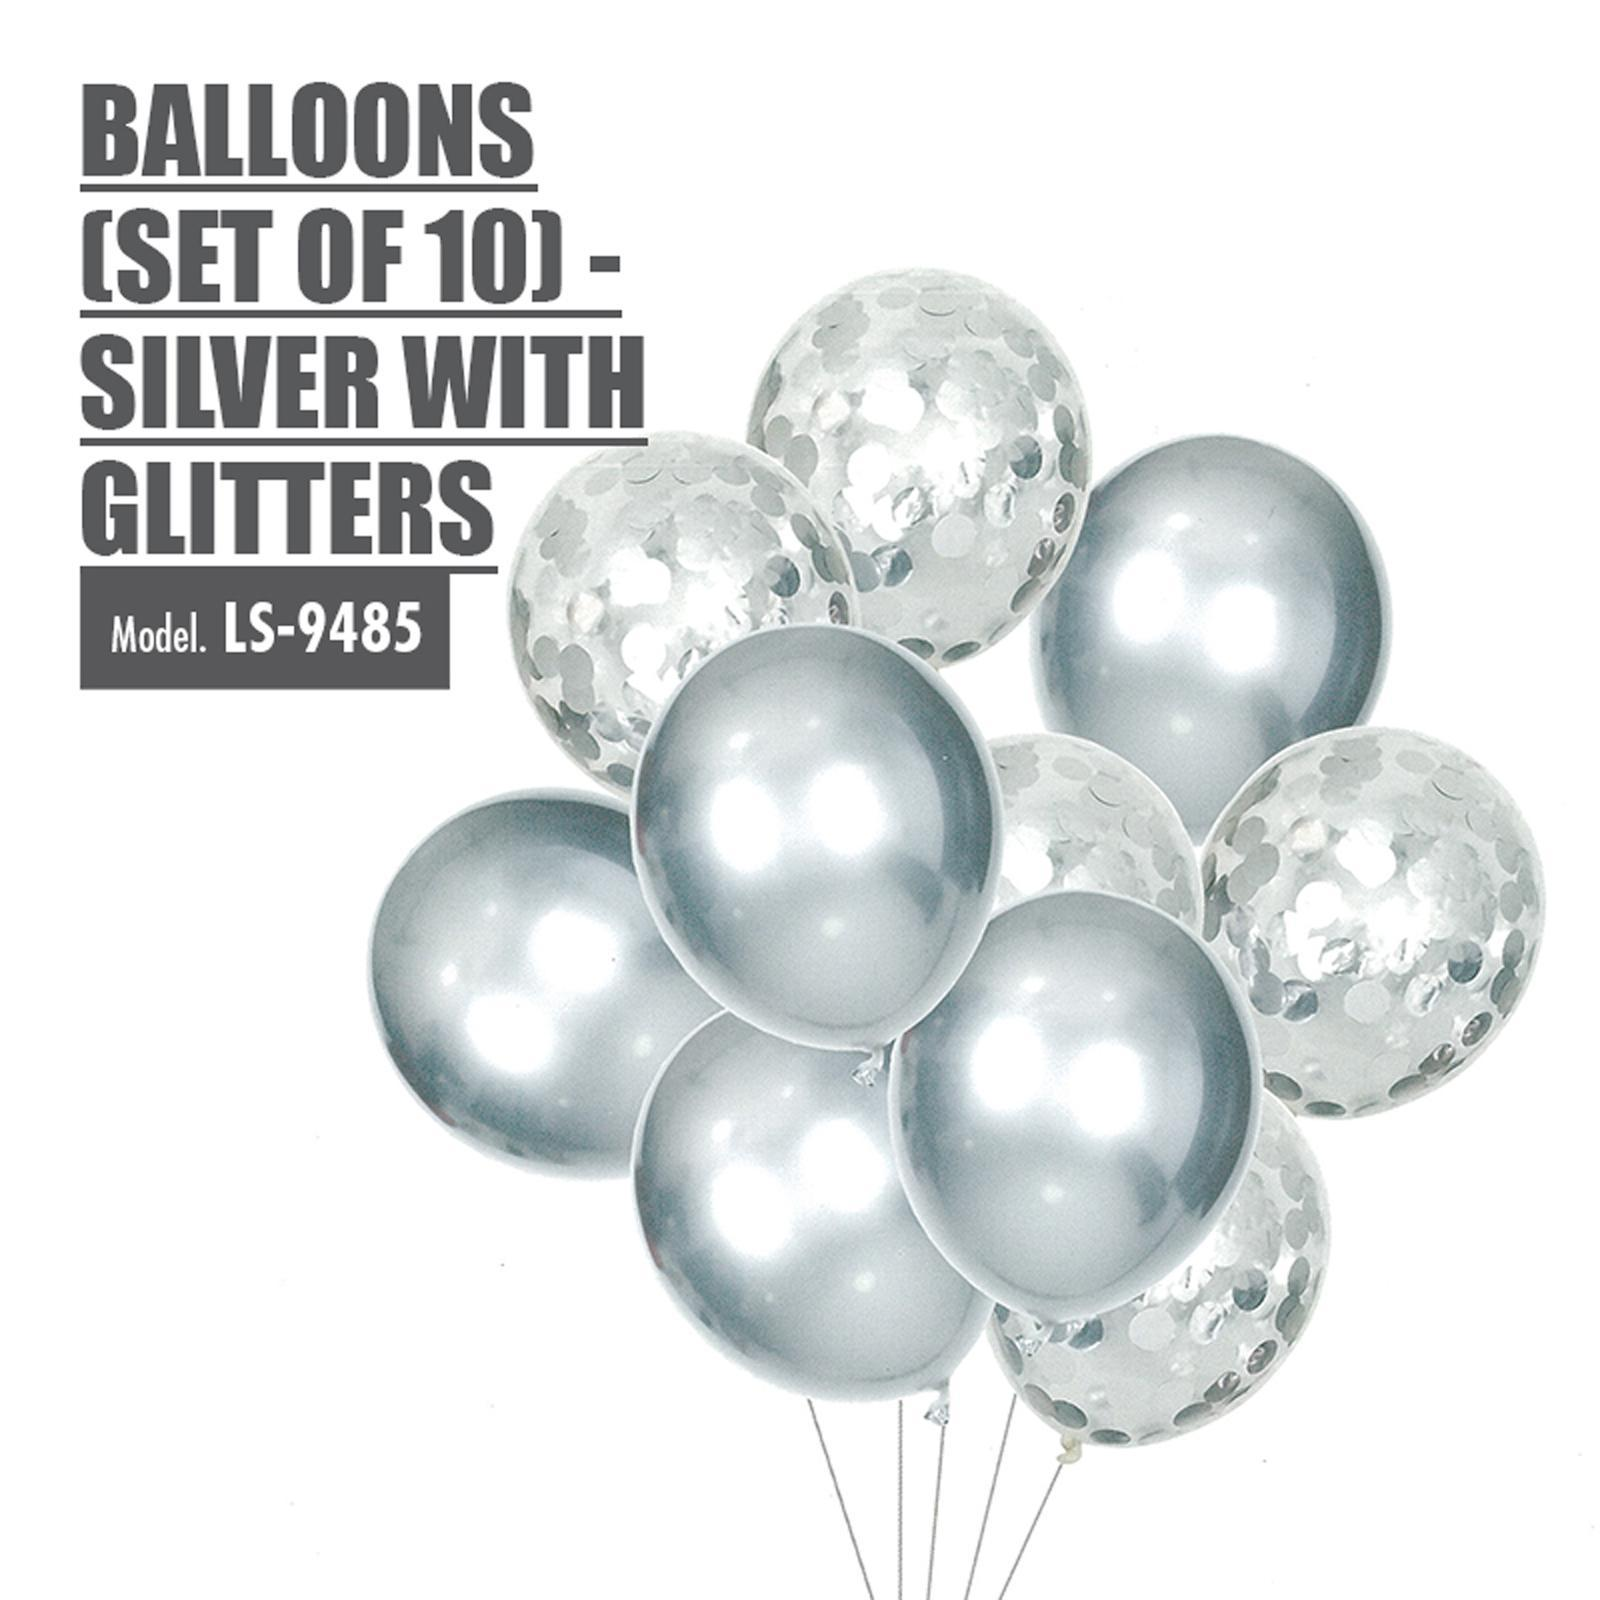 HOUZE Balloons (Set Of 10) - Silver With Glitters